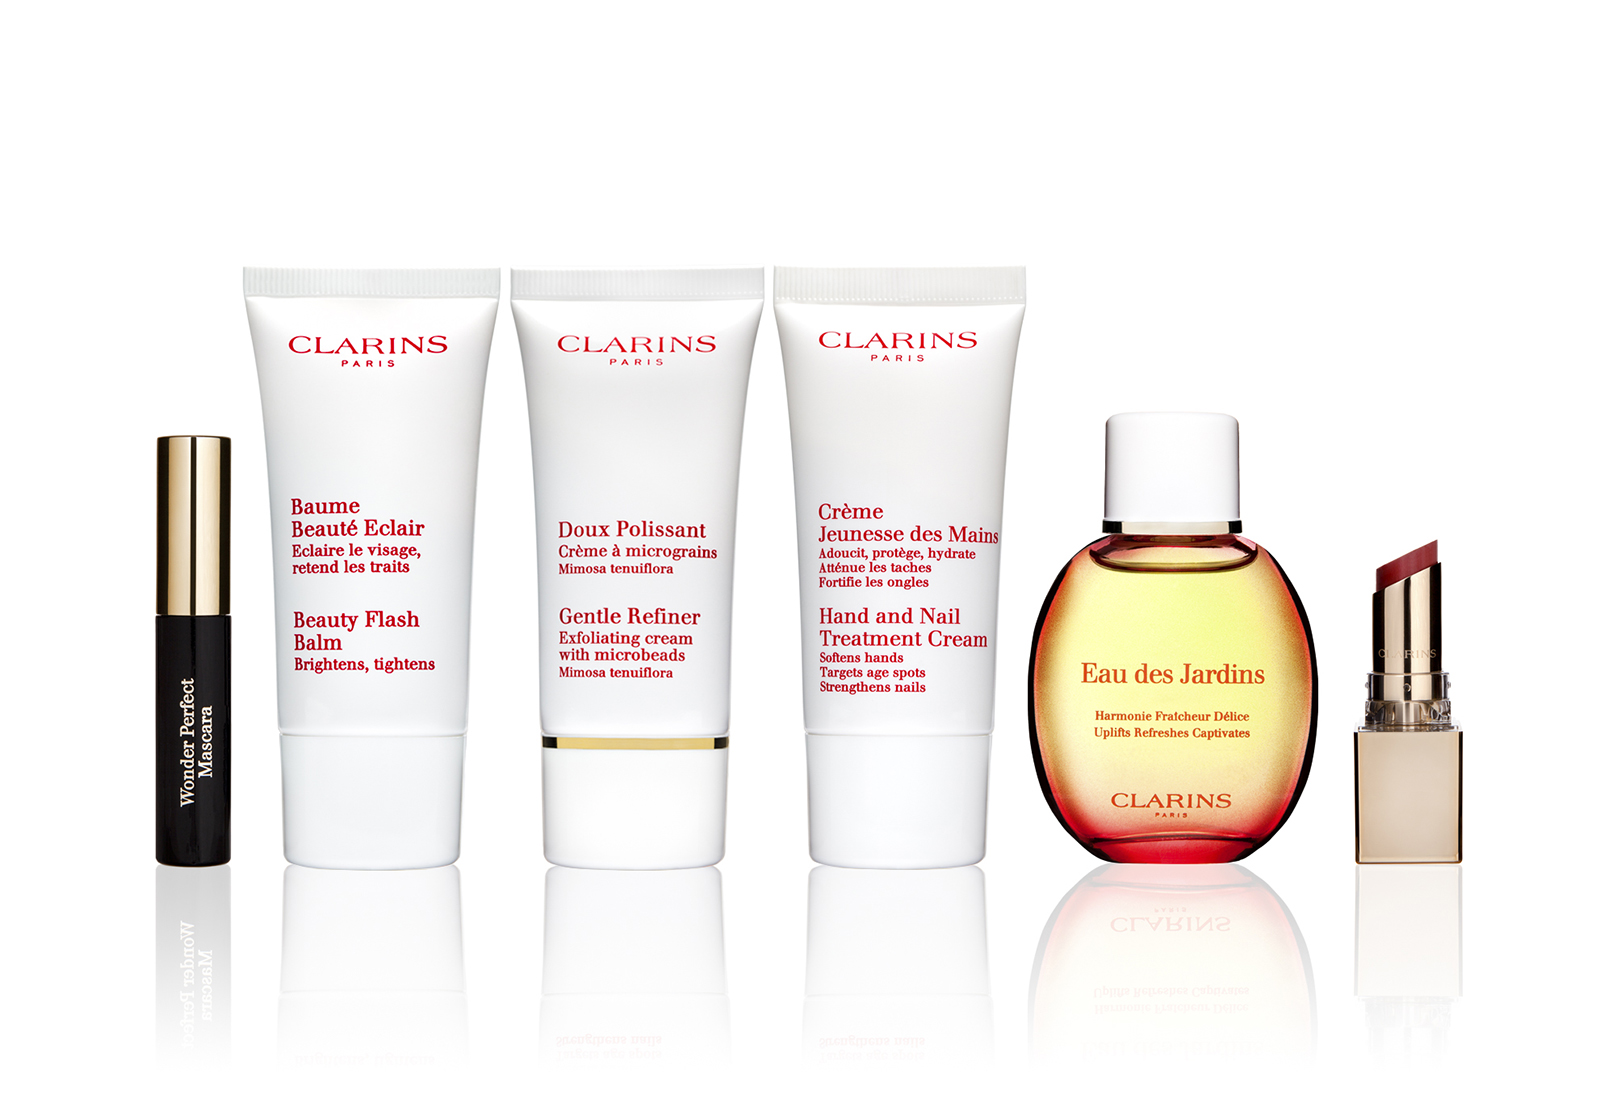 Clarins Products Line Up-Kar